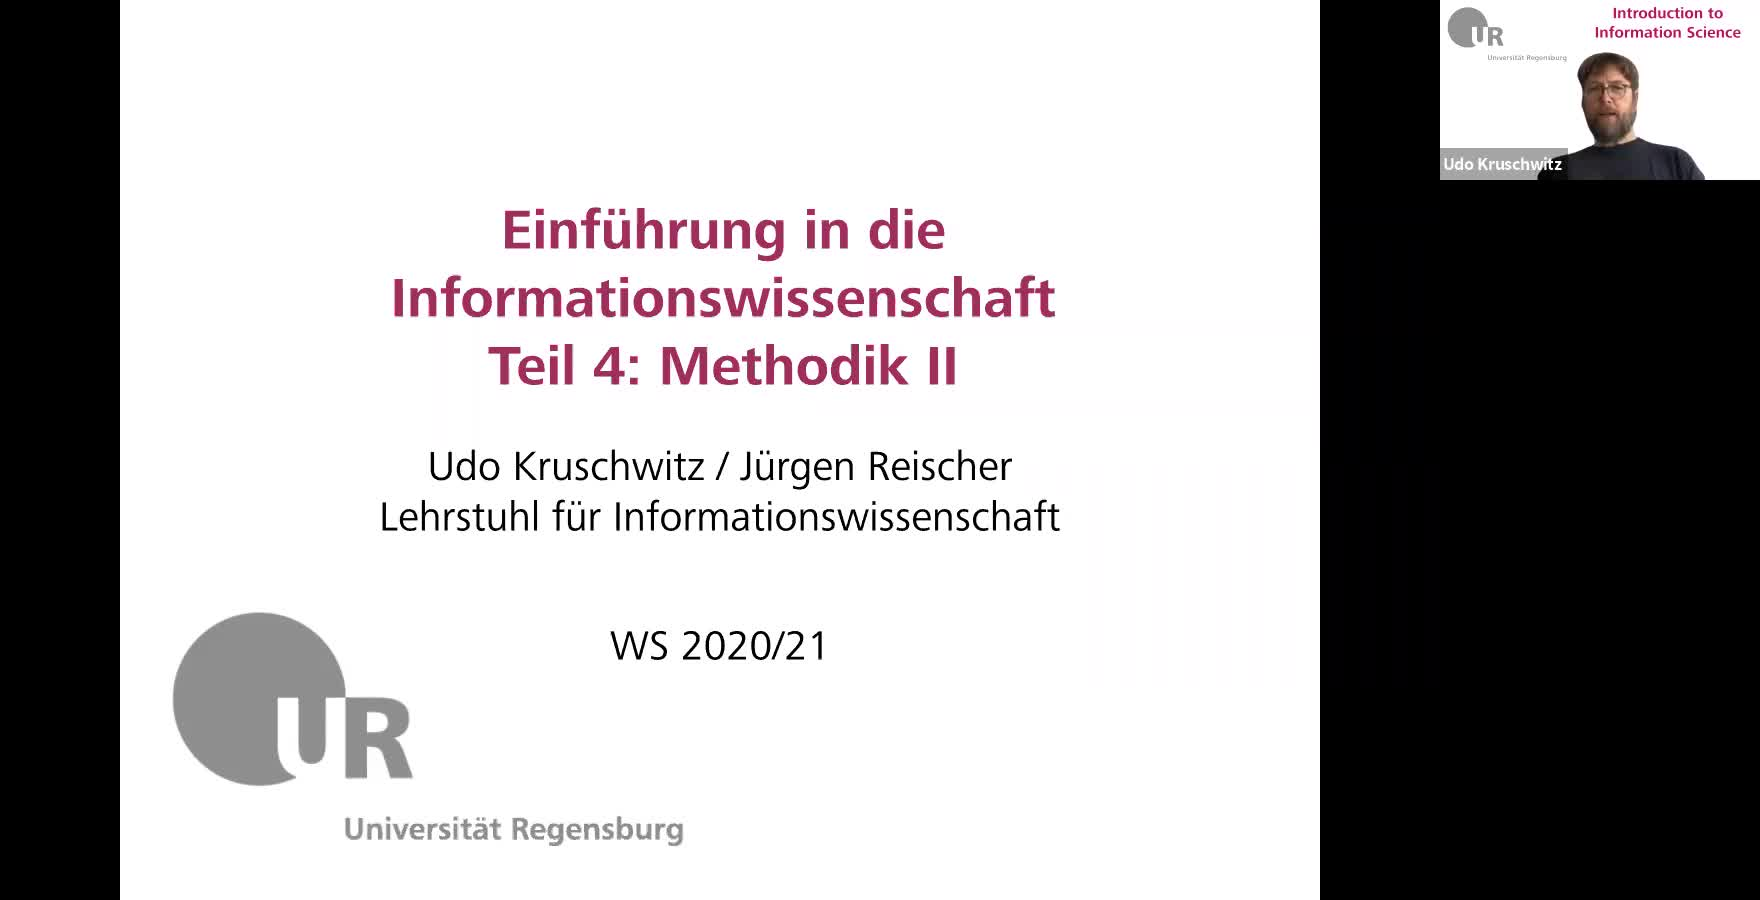 Introduction to Information Science - Lecture 6 (Research methods II)